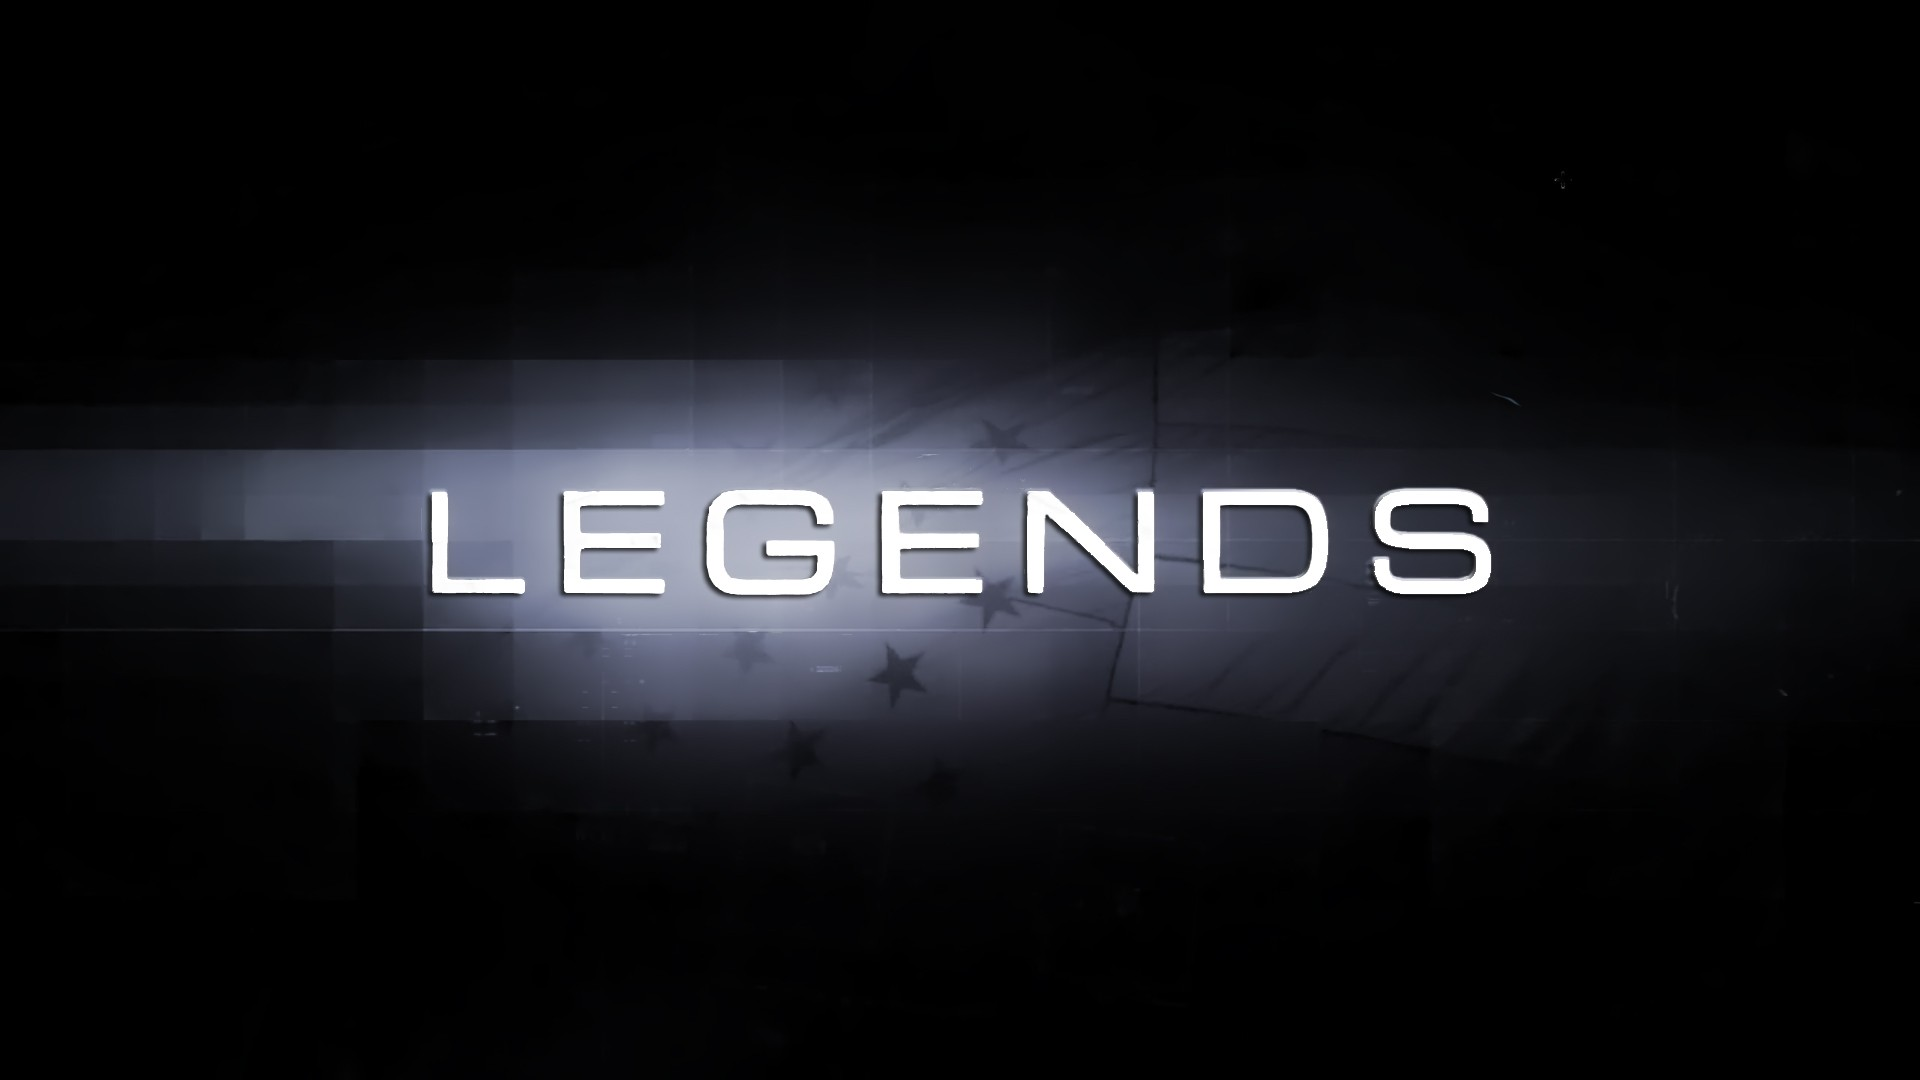 of legends